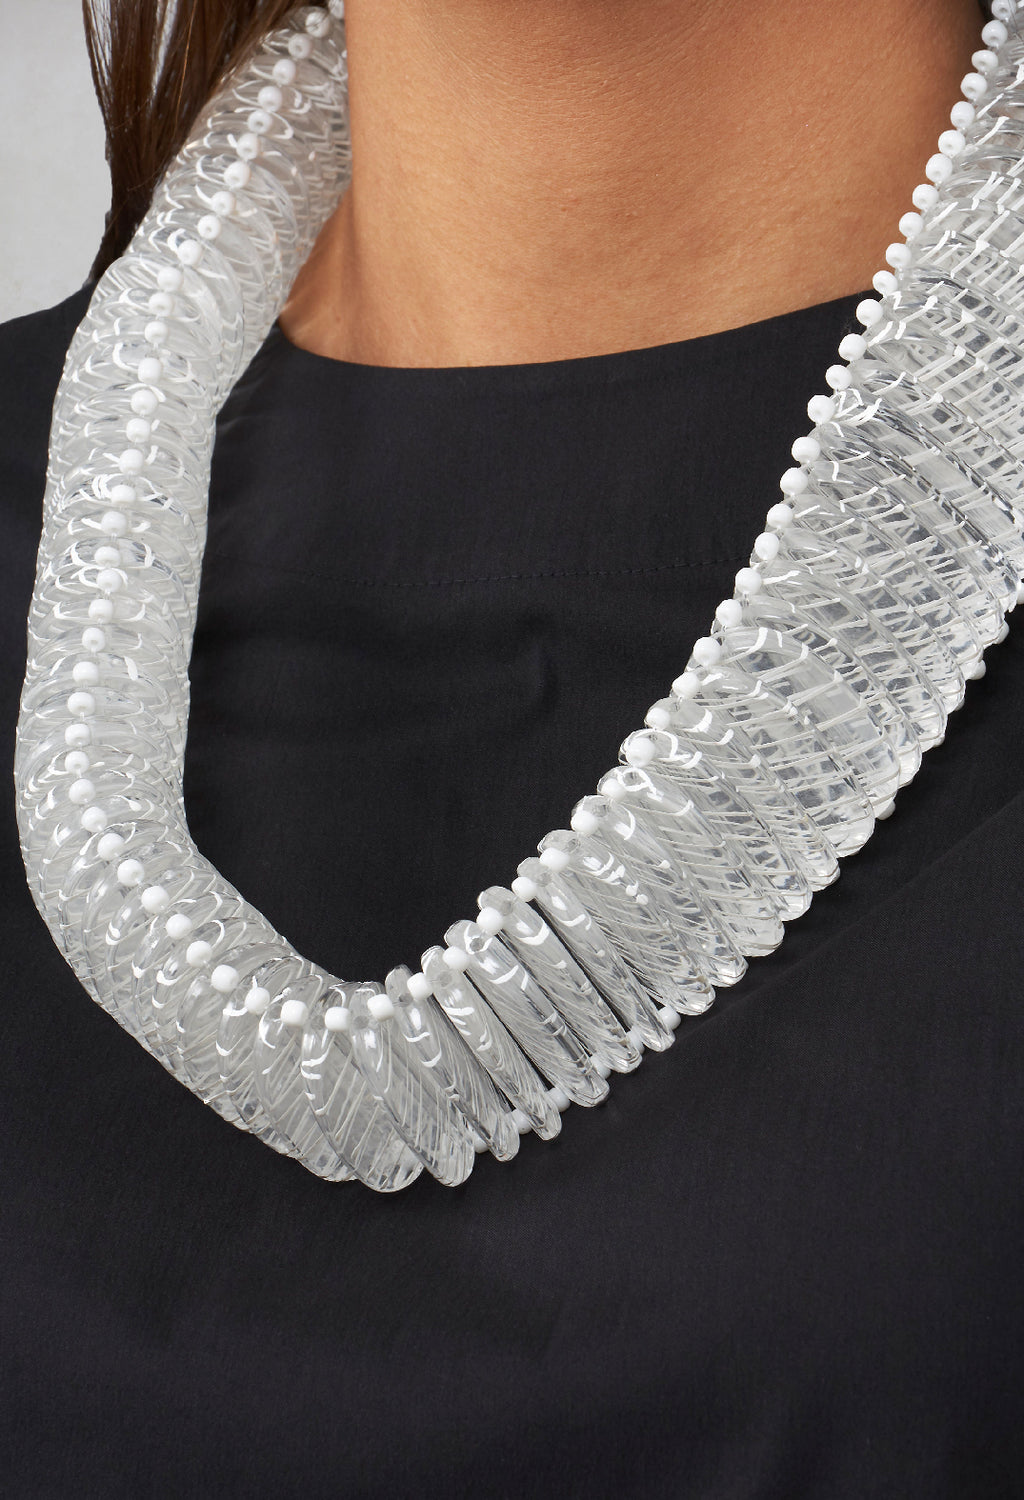 Chunky Necklace in White